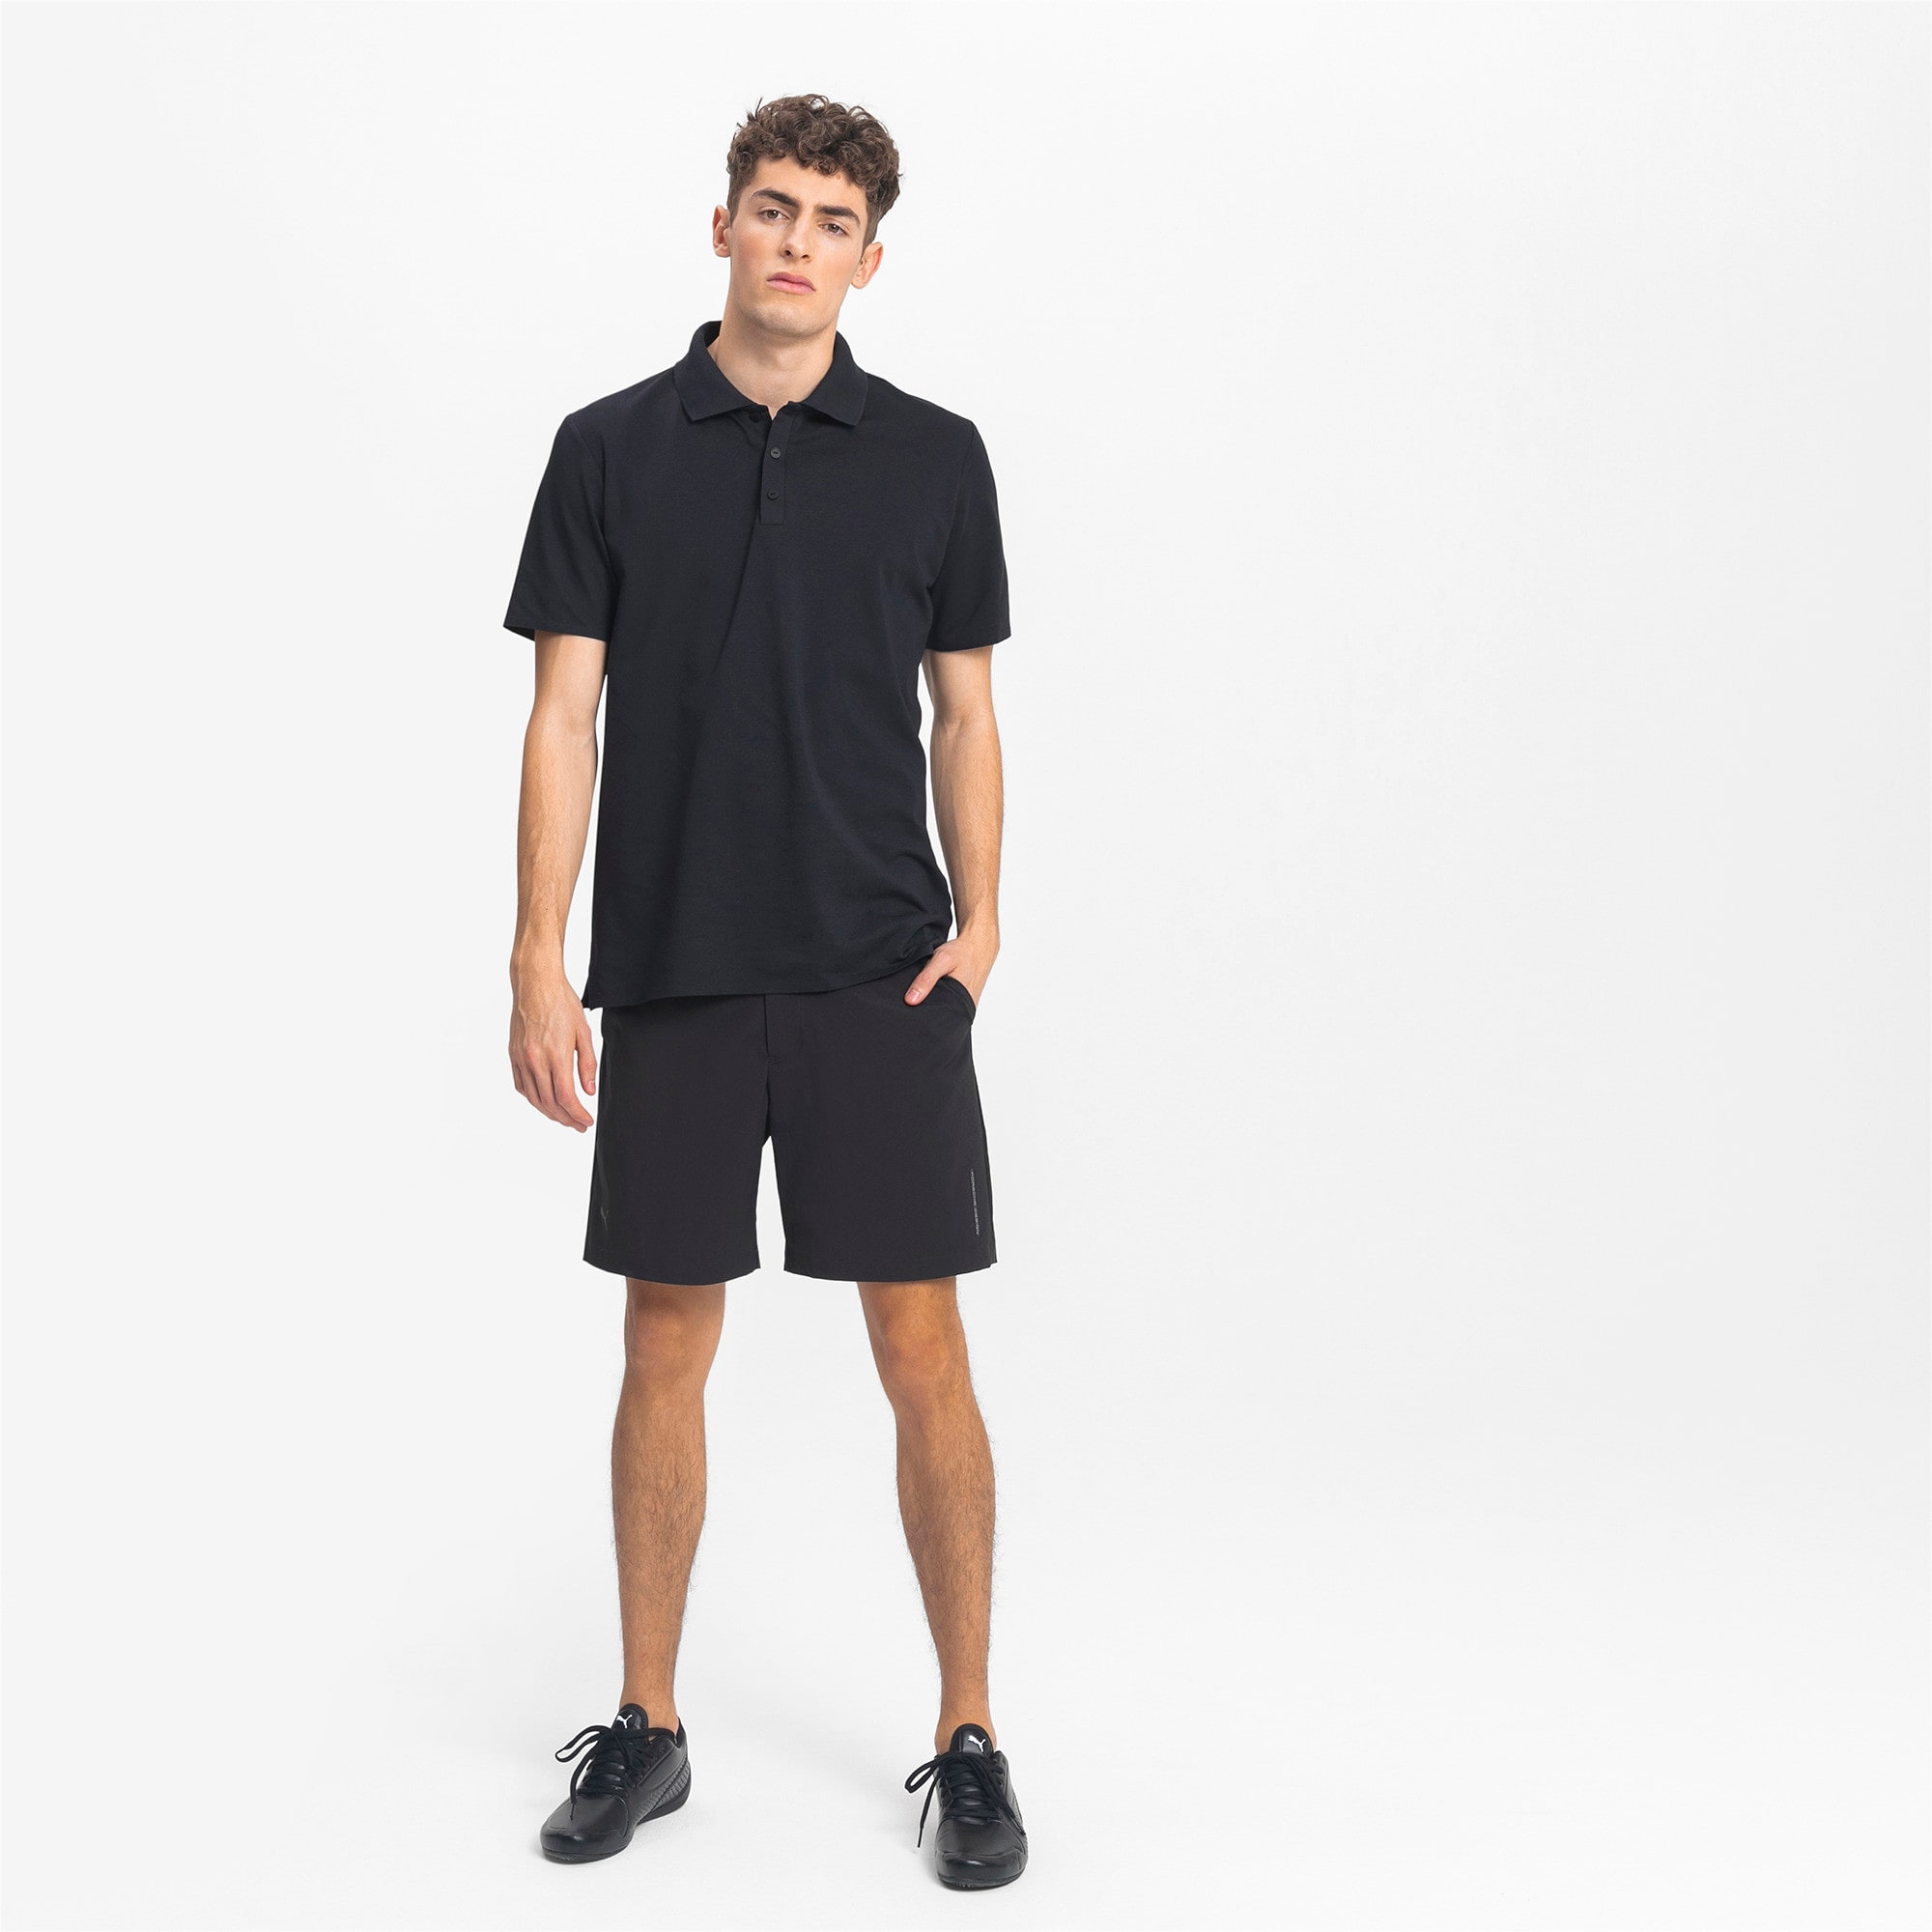 Thumbnail 3 of Men's Motorsports Polo, Jet Black, medium